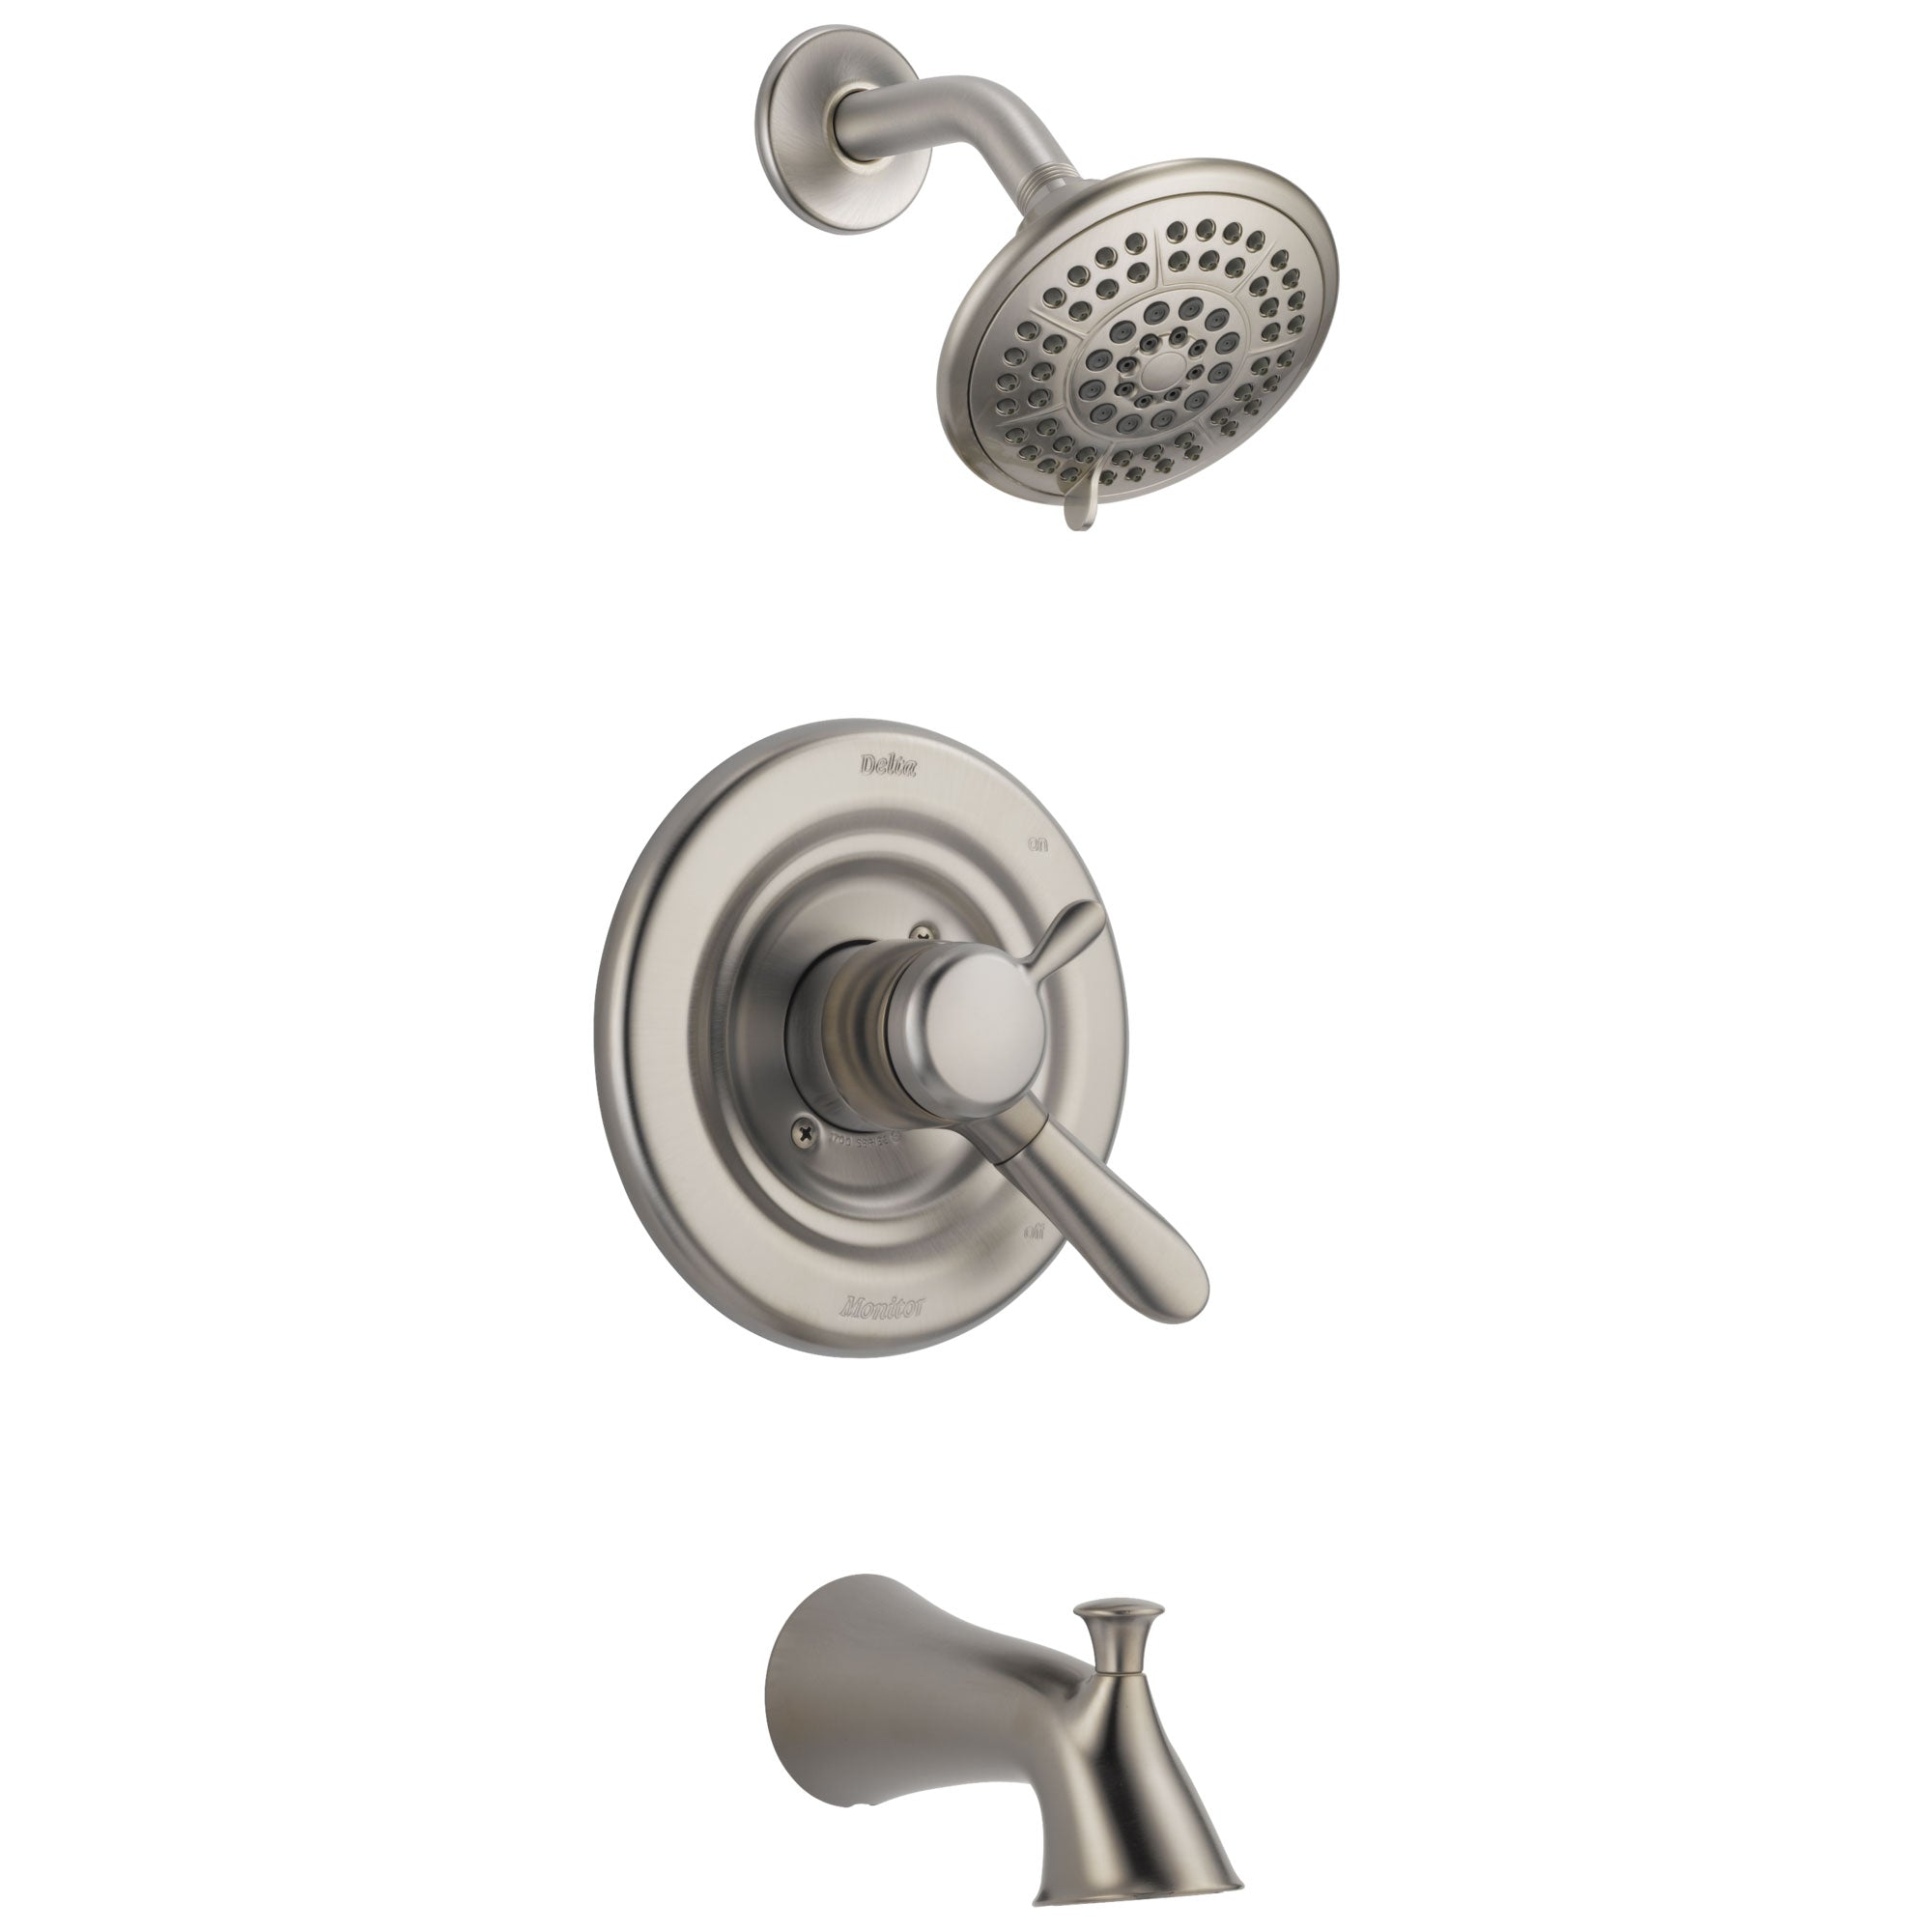 Delta Lahara Temp/Volume Stainless Steel Finish Tub & Shower Faucet Trim 338293